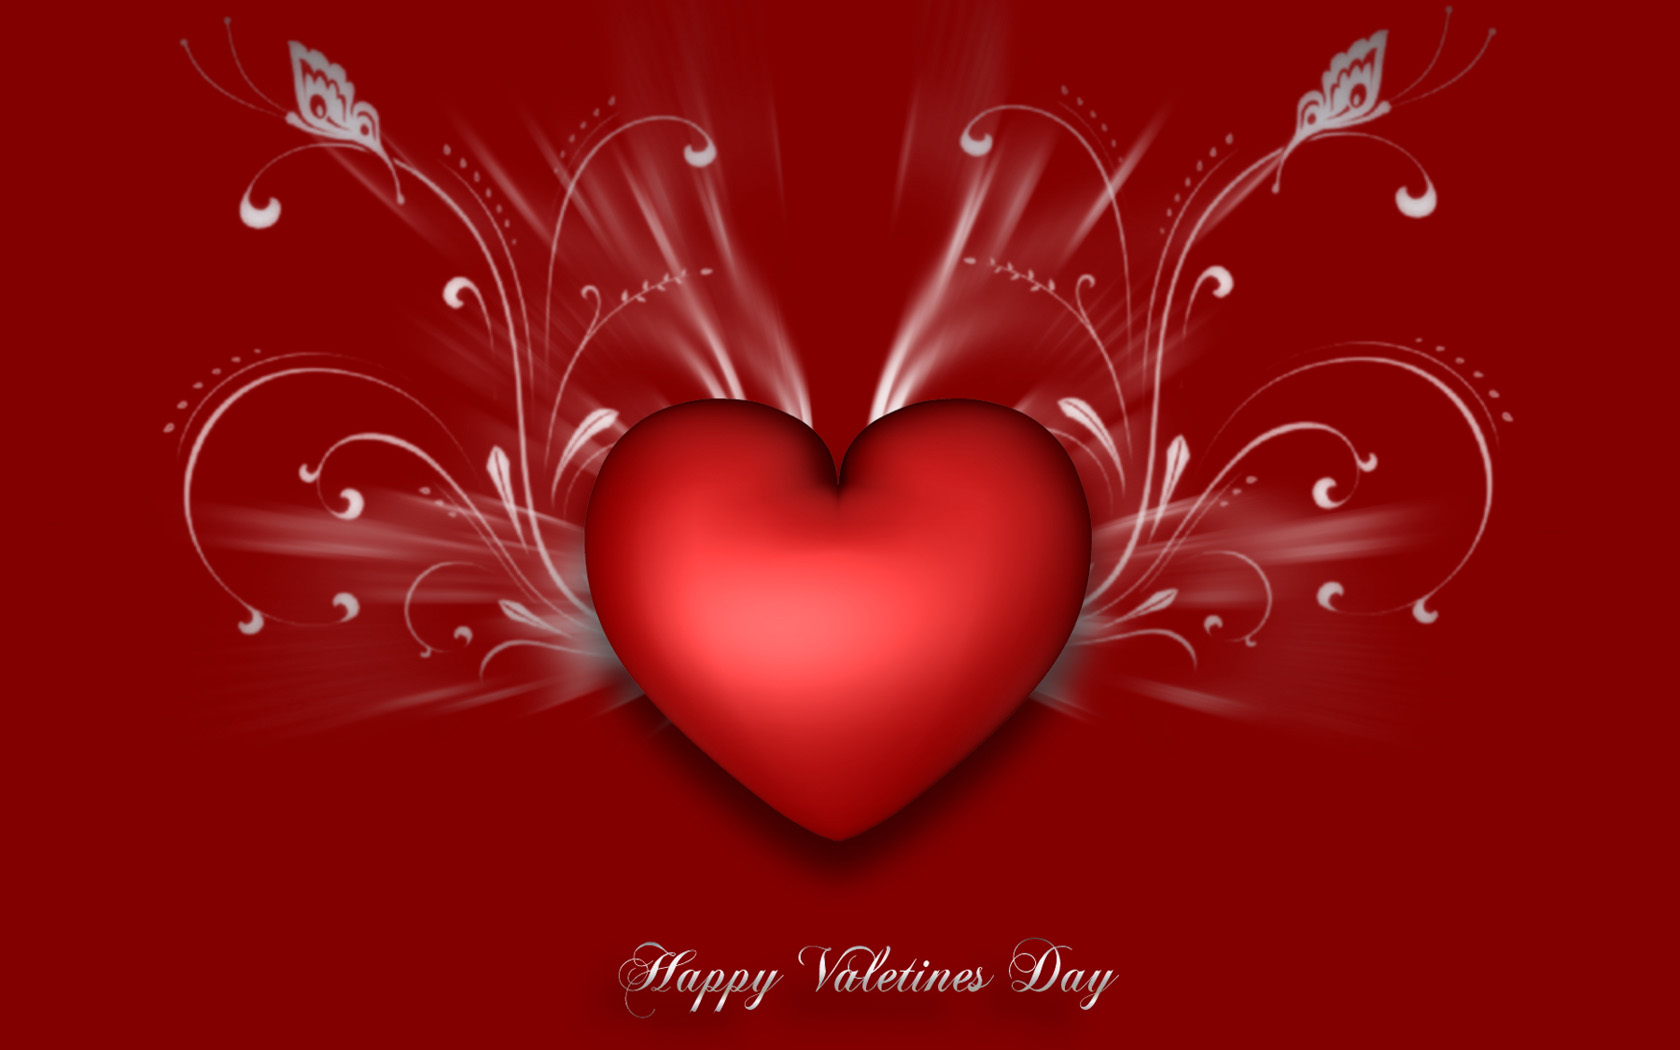 10 Cool Happy Valentines Day Wallpapers for Your Desktop 1680x1050